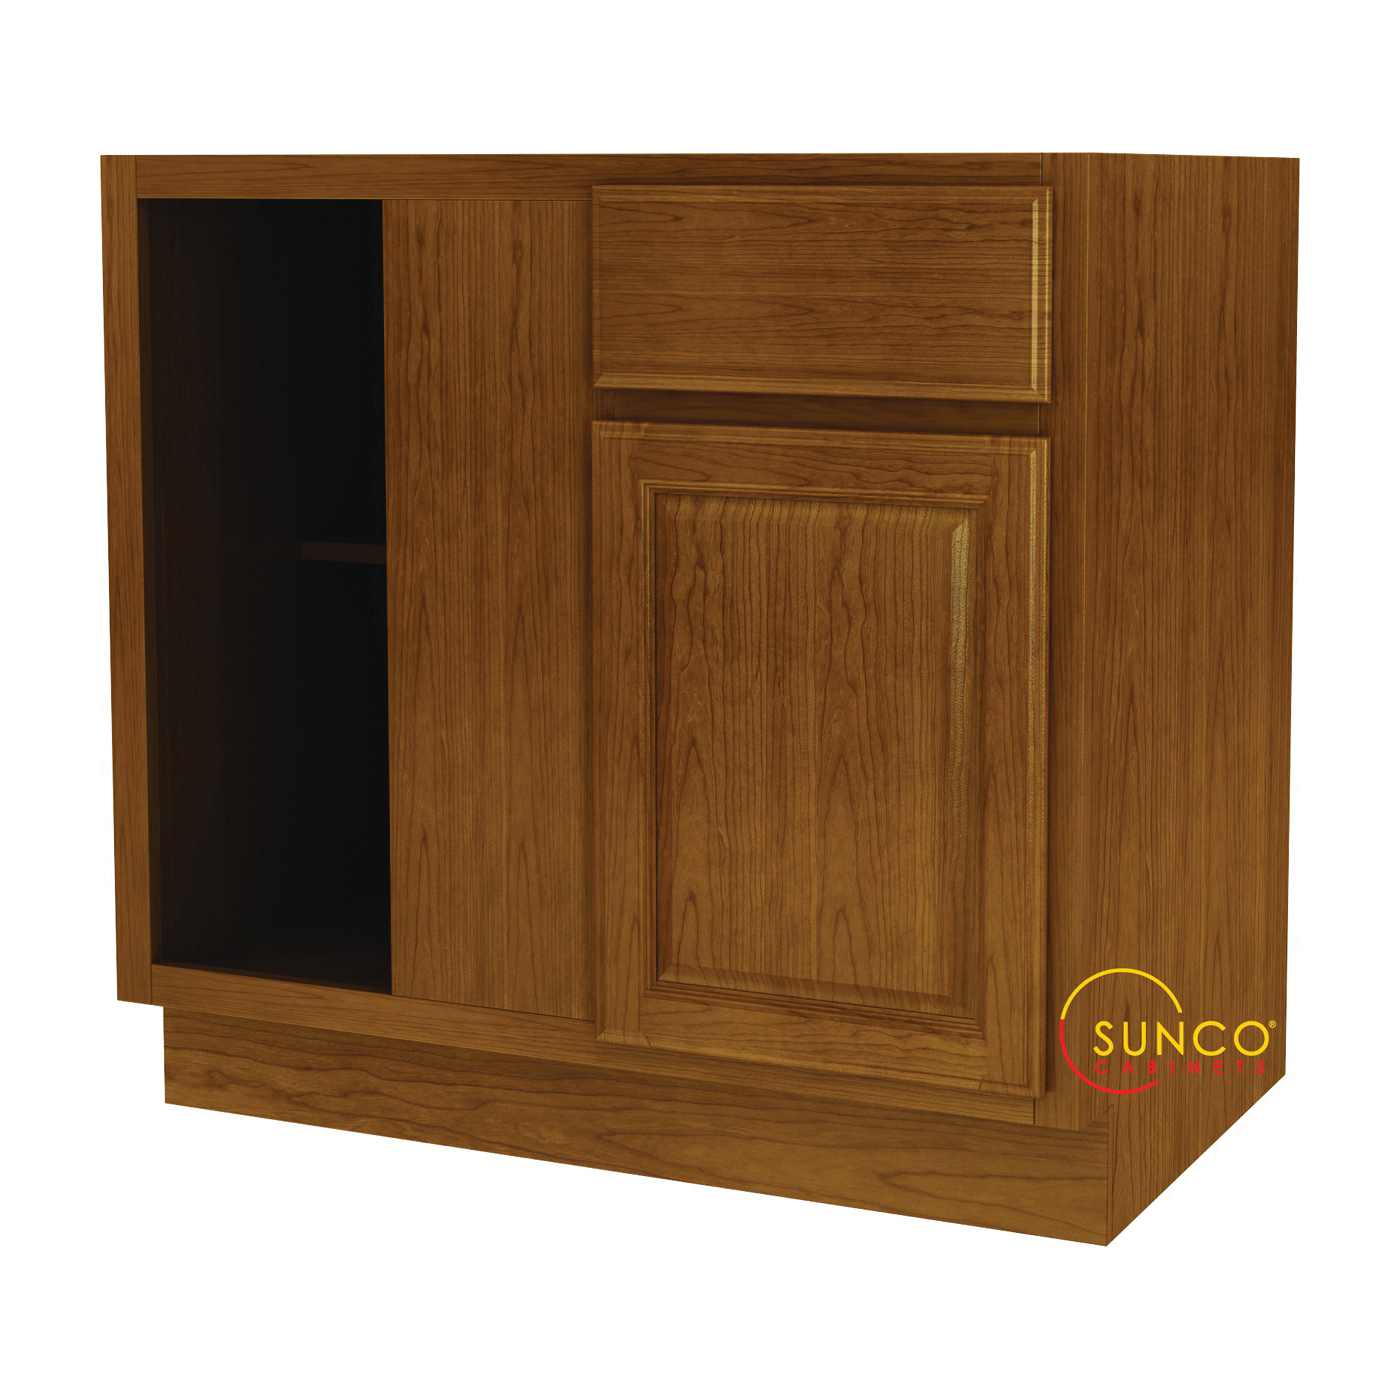 Picture of Sunco Randolph BBC42RT Kitchen Cabinet, 45 in OAW, 36 in OAD, Wood, Amber, 1-Drawer, 1-Shelf, Assembled